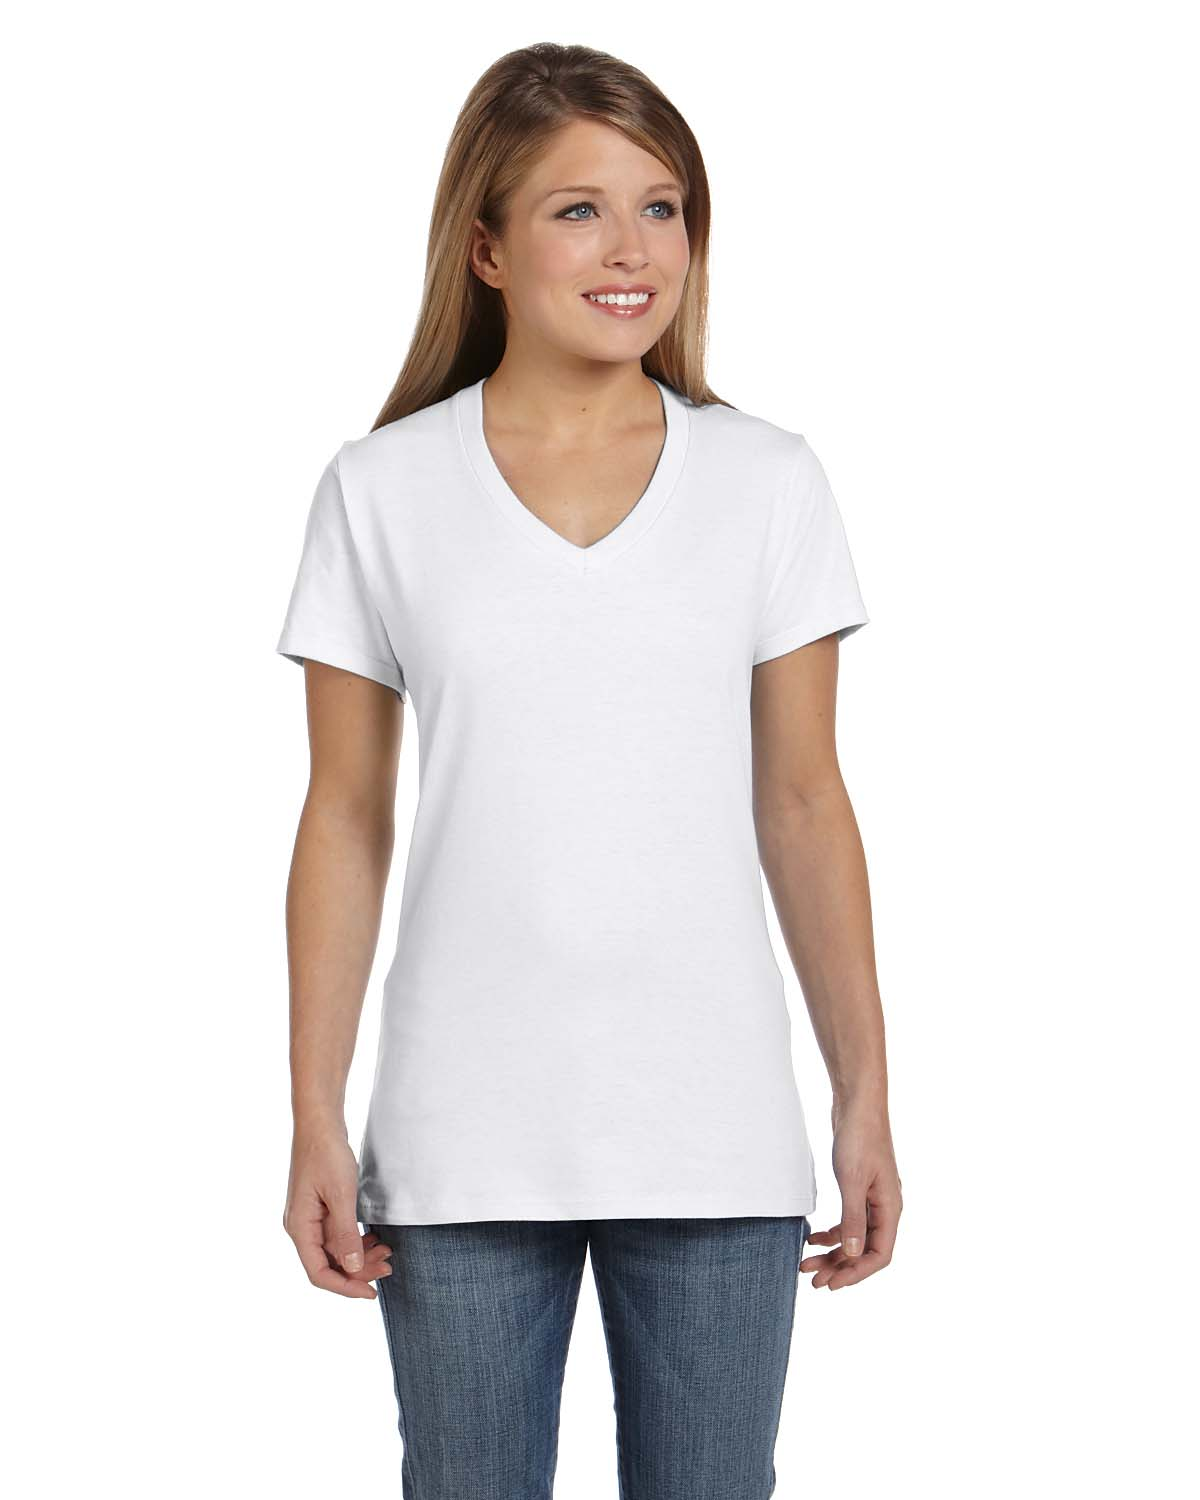 Our v-neck t-shirts are available in a variety of colors and are made with our premium ring-spun cotton for added comfort. Available in contemporary styling for a slimmer fit and a narrow, ribbed collar for a more polished look, you'll find our v-neck tee is perfect for casual Fridays and weekend wear.